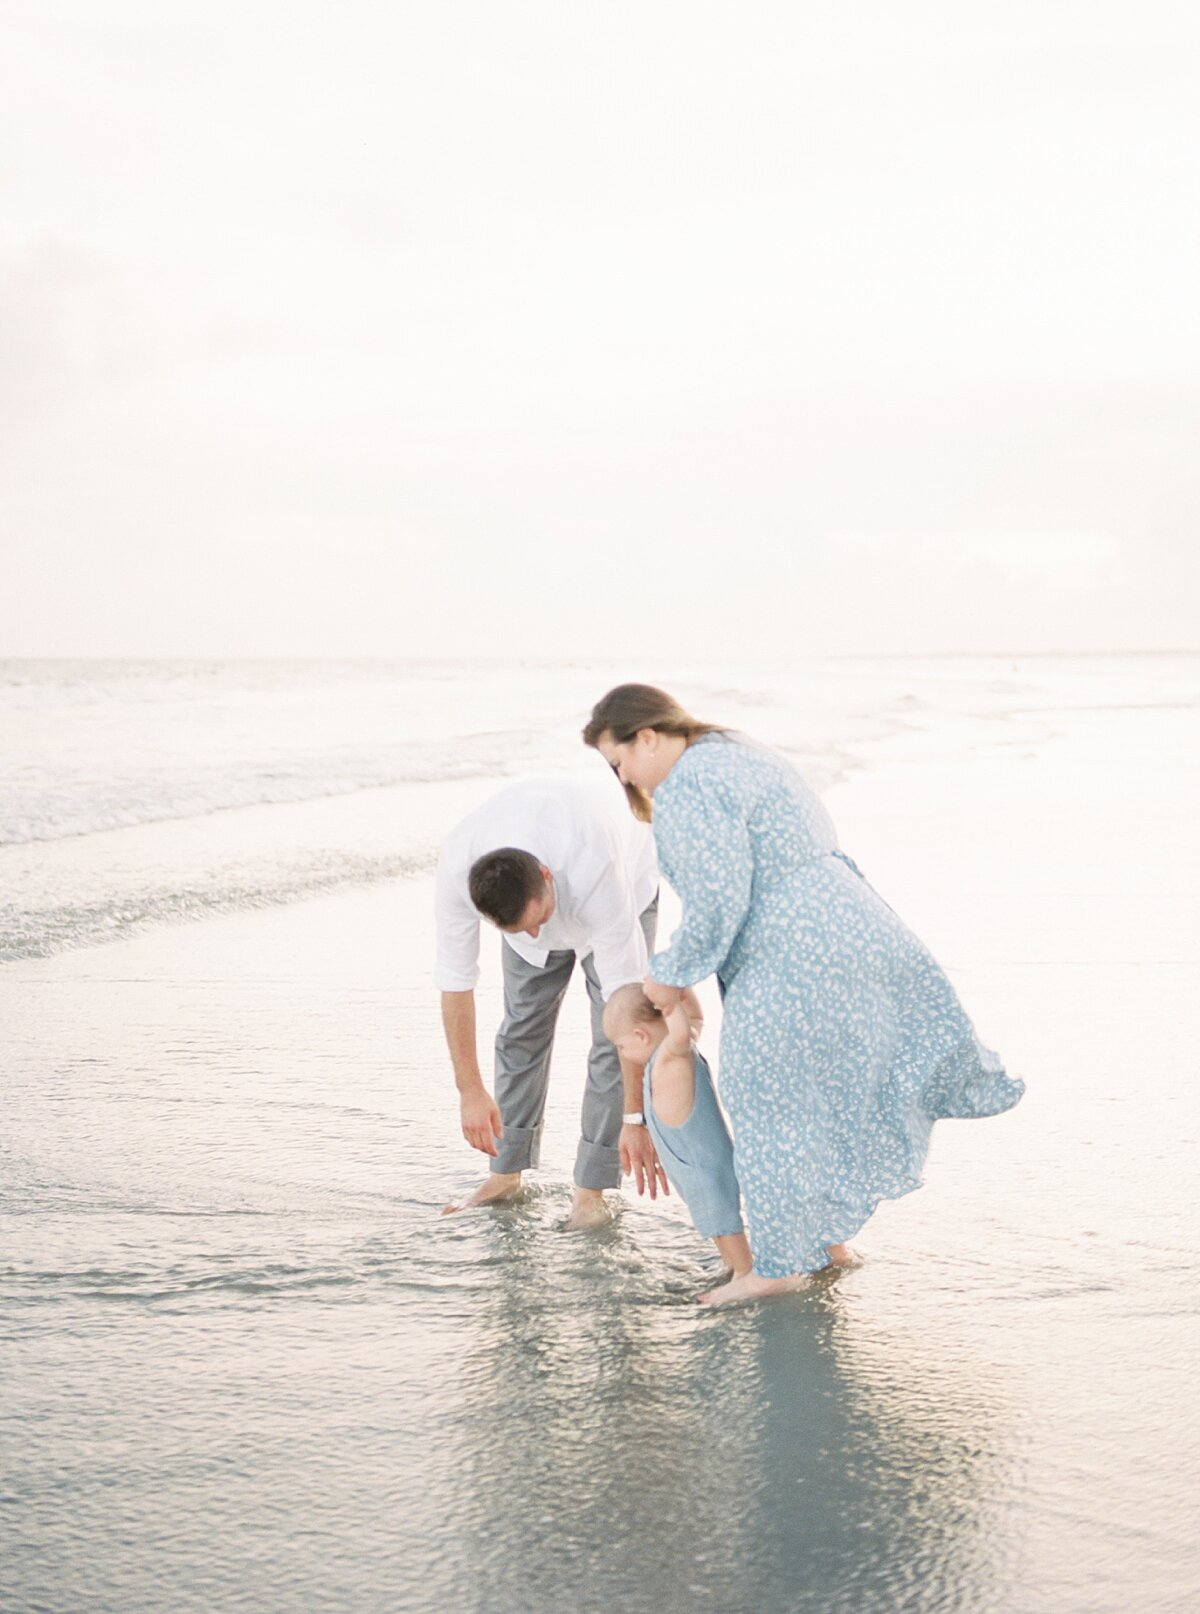 First-birthday-photoshoot-Isle-of-Palms-caitlyn-motycka-photography_0024